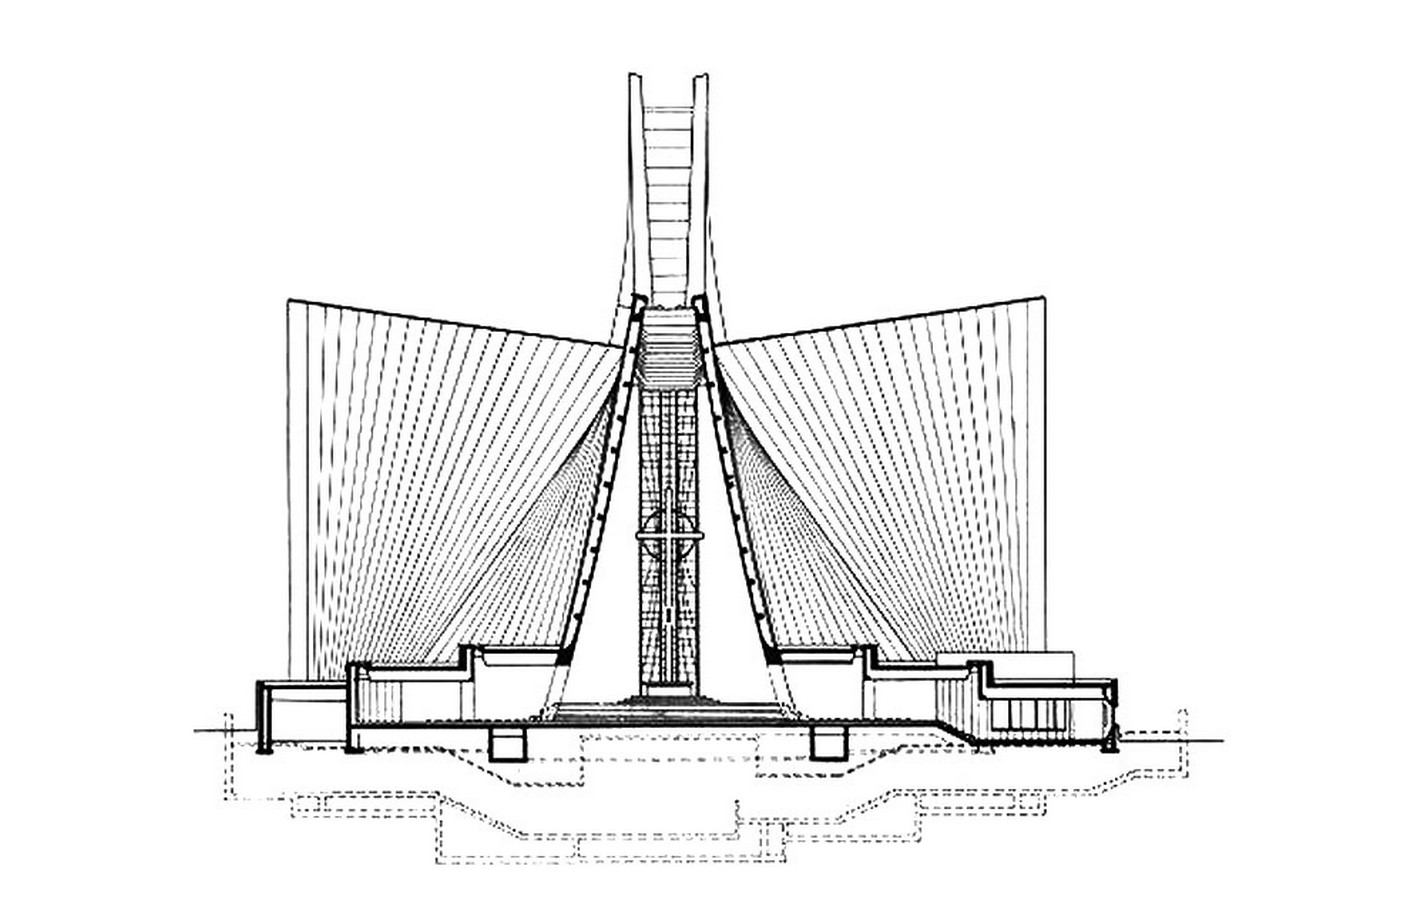 Kenzo Tange's Pritzker winning St. Mary's Cathedral, Tokyo - Sheet6